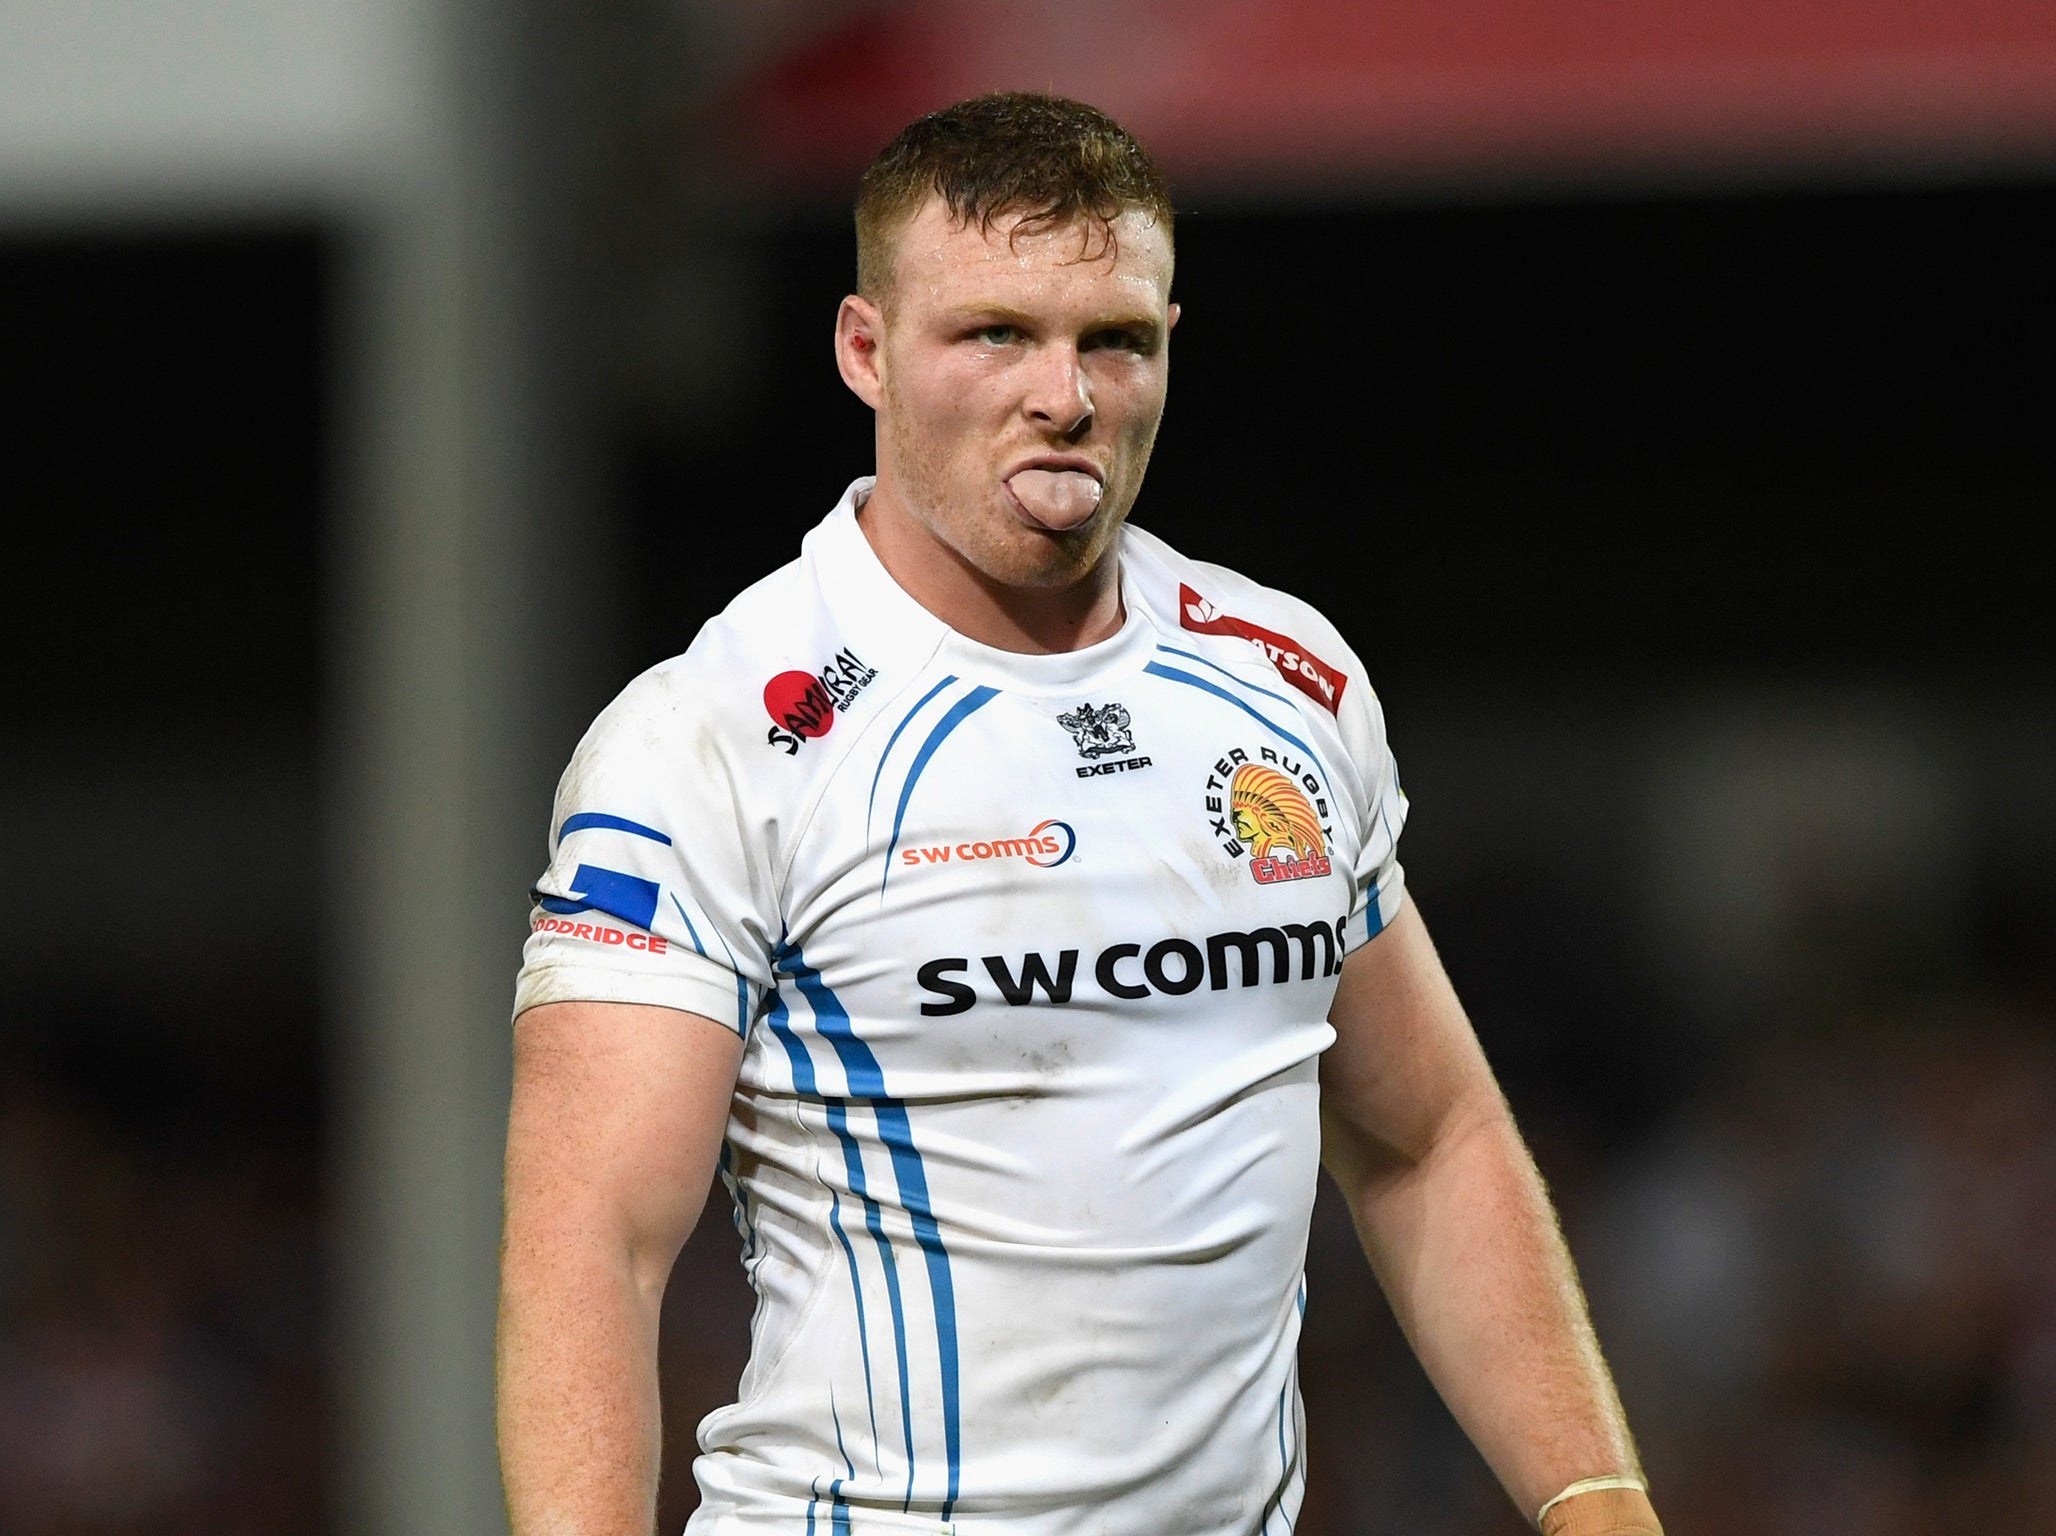 Does Exeter's in-form No 8 Sam Simmonds have what it takes to mix it at  international level? | The Independent | The Independent